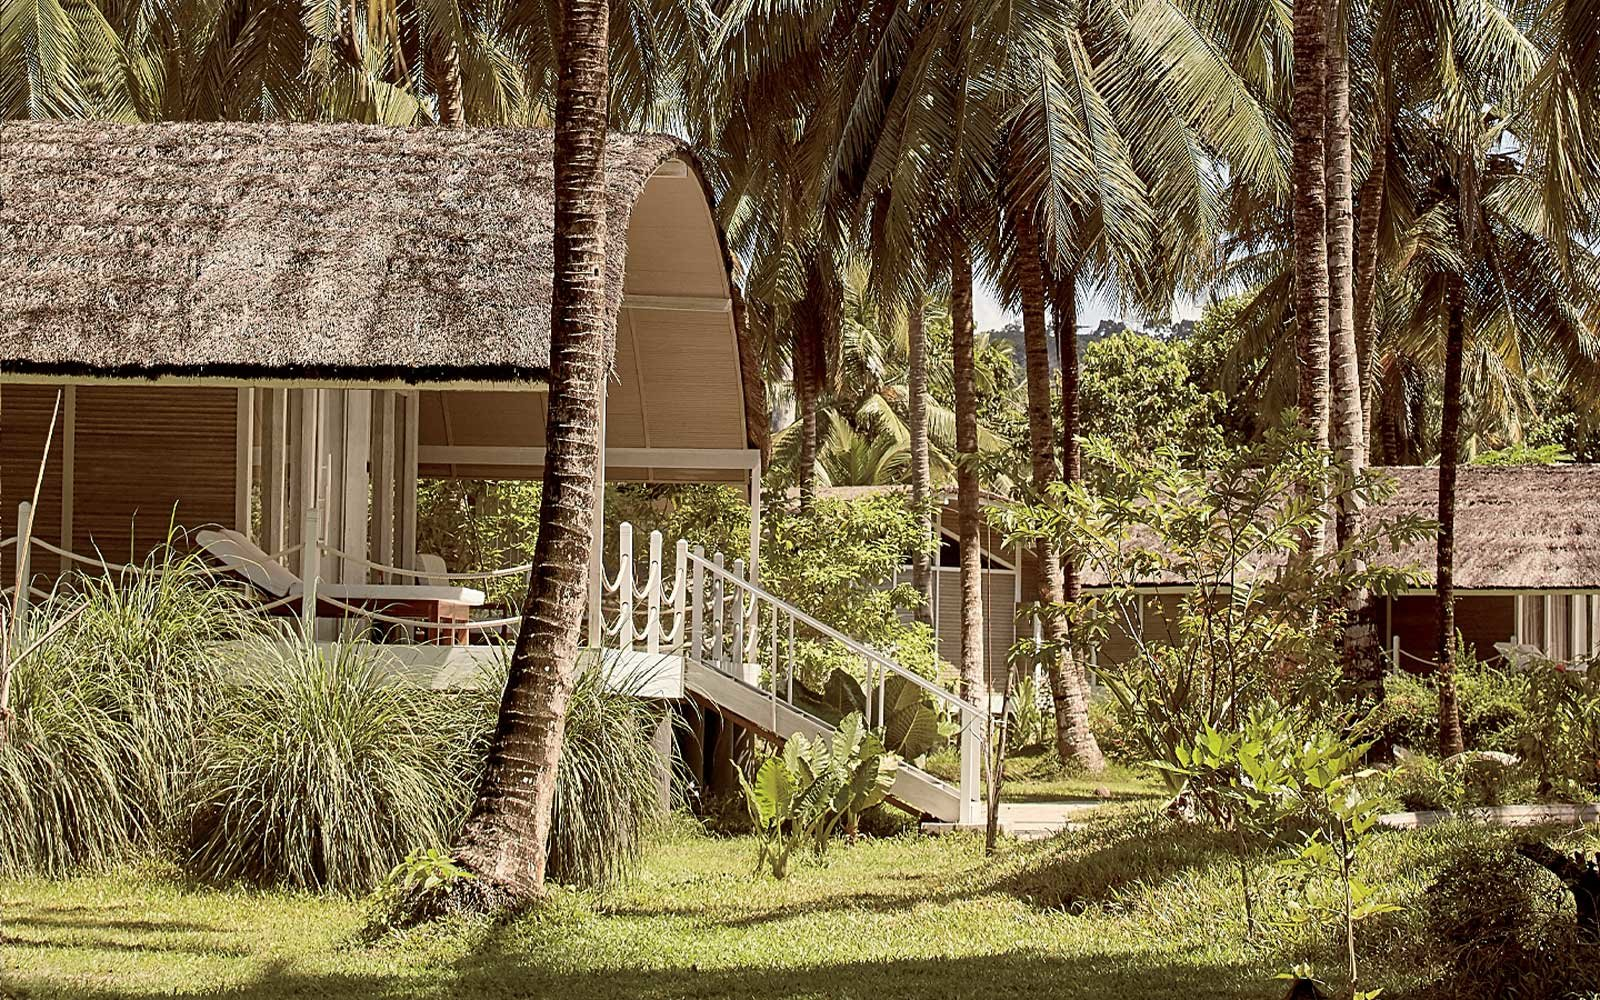 Villa at the Taj Exotica Andaman Islands resort, in India